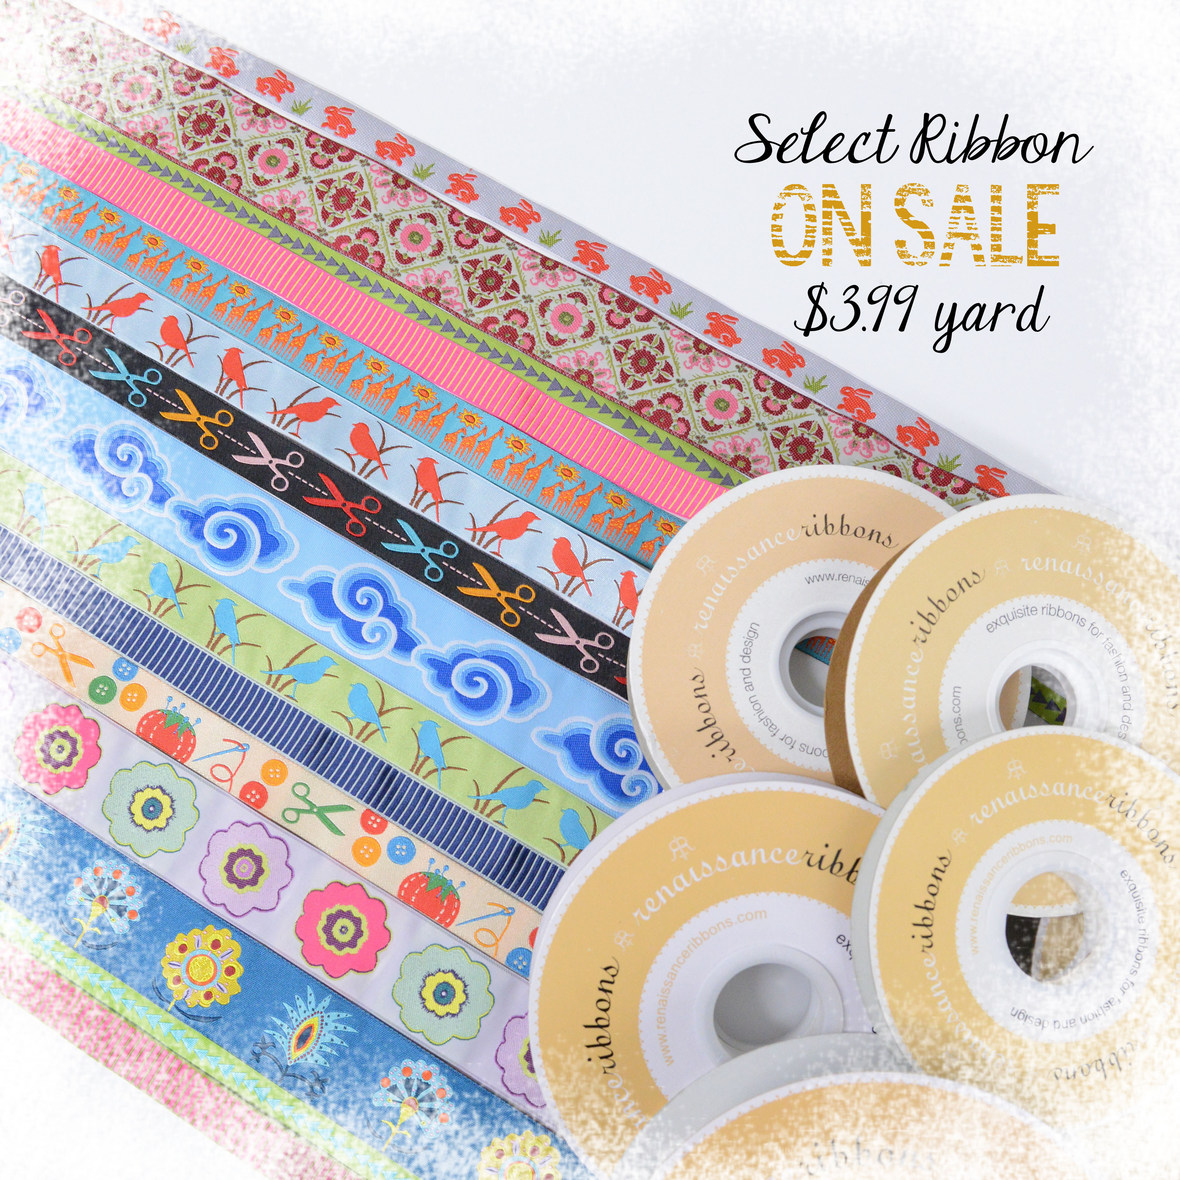 RIbbons On Sale with frosty border